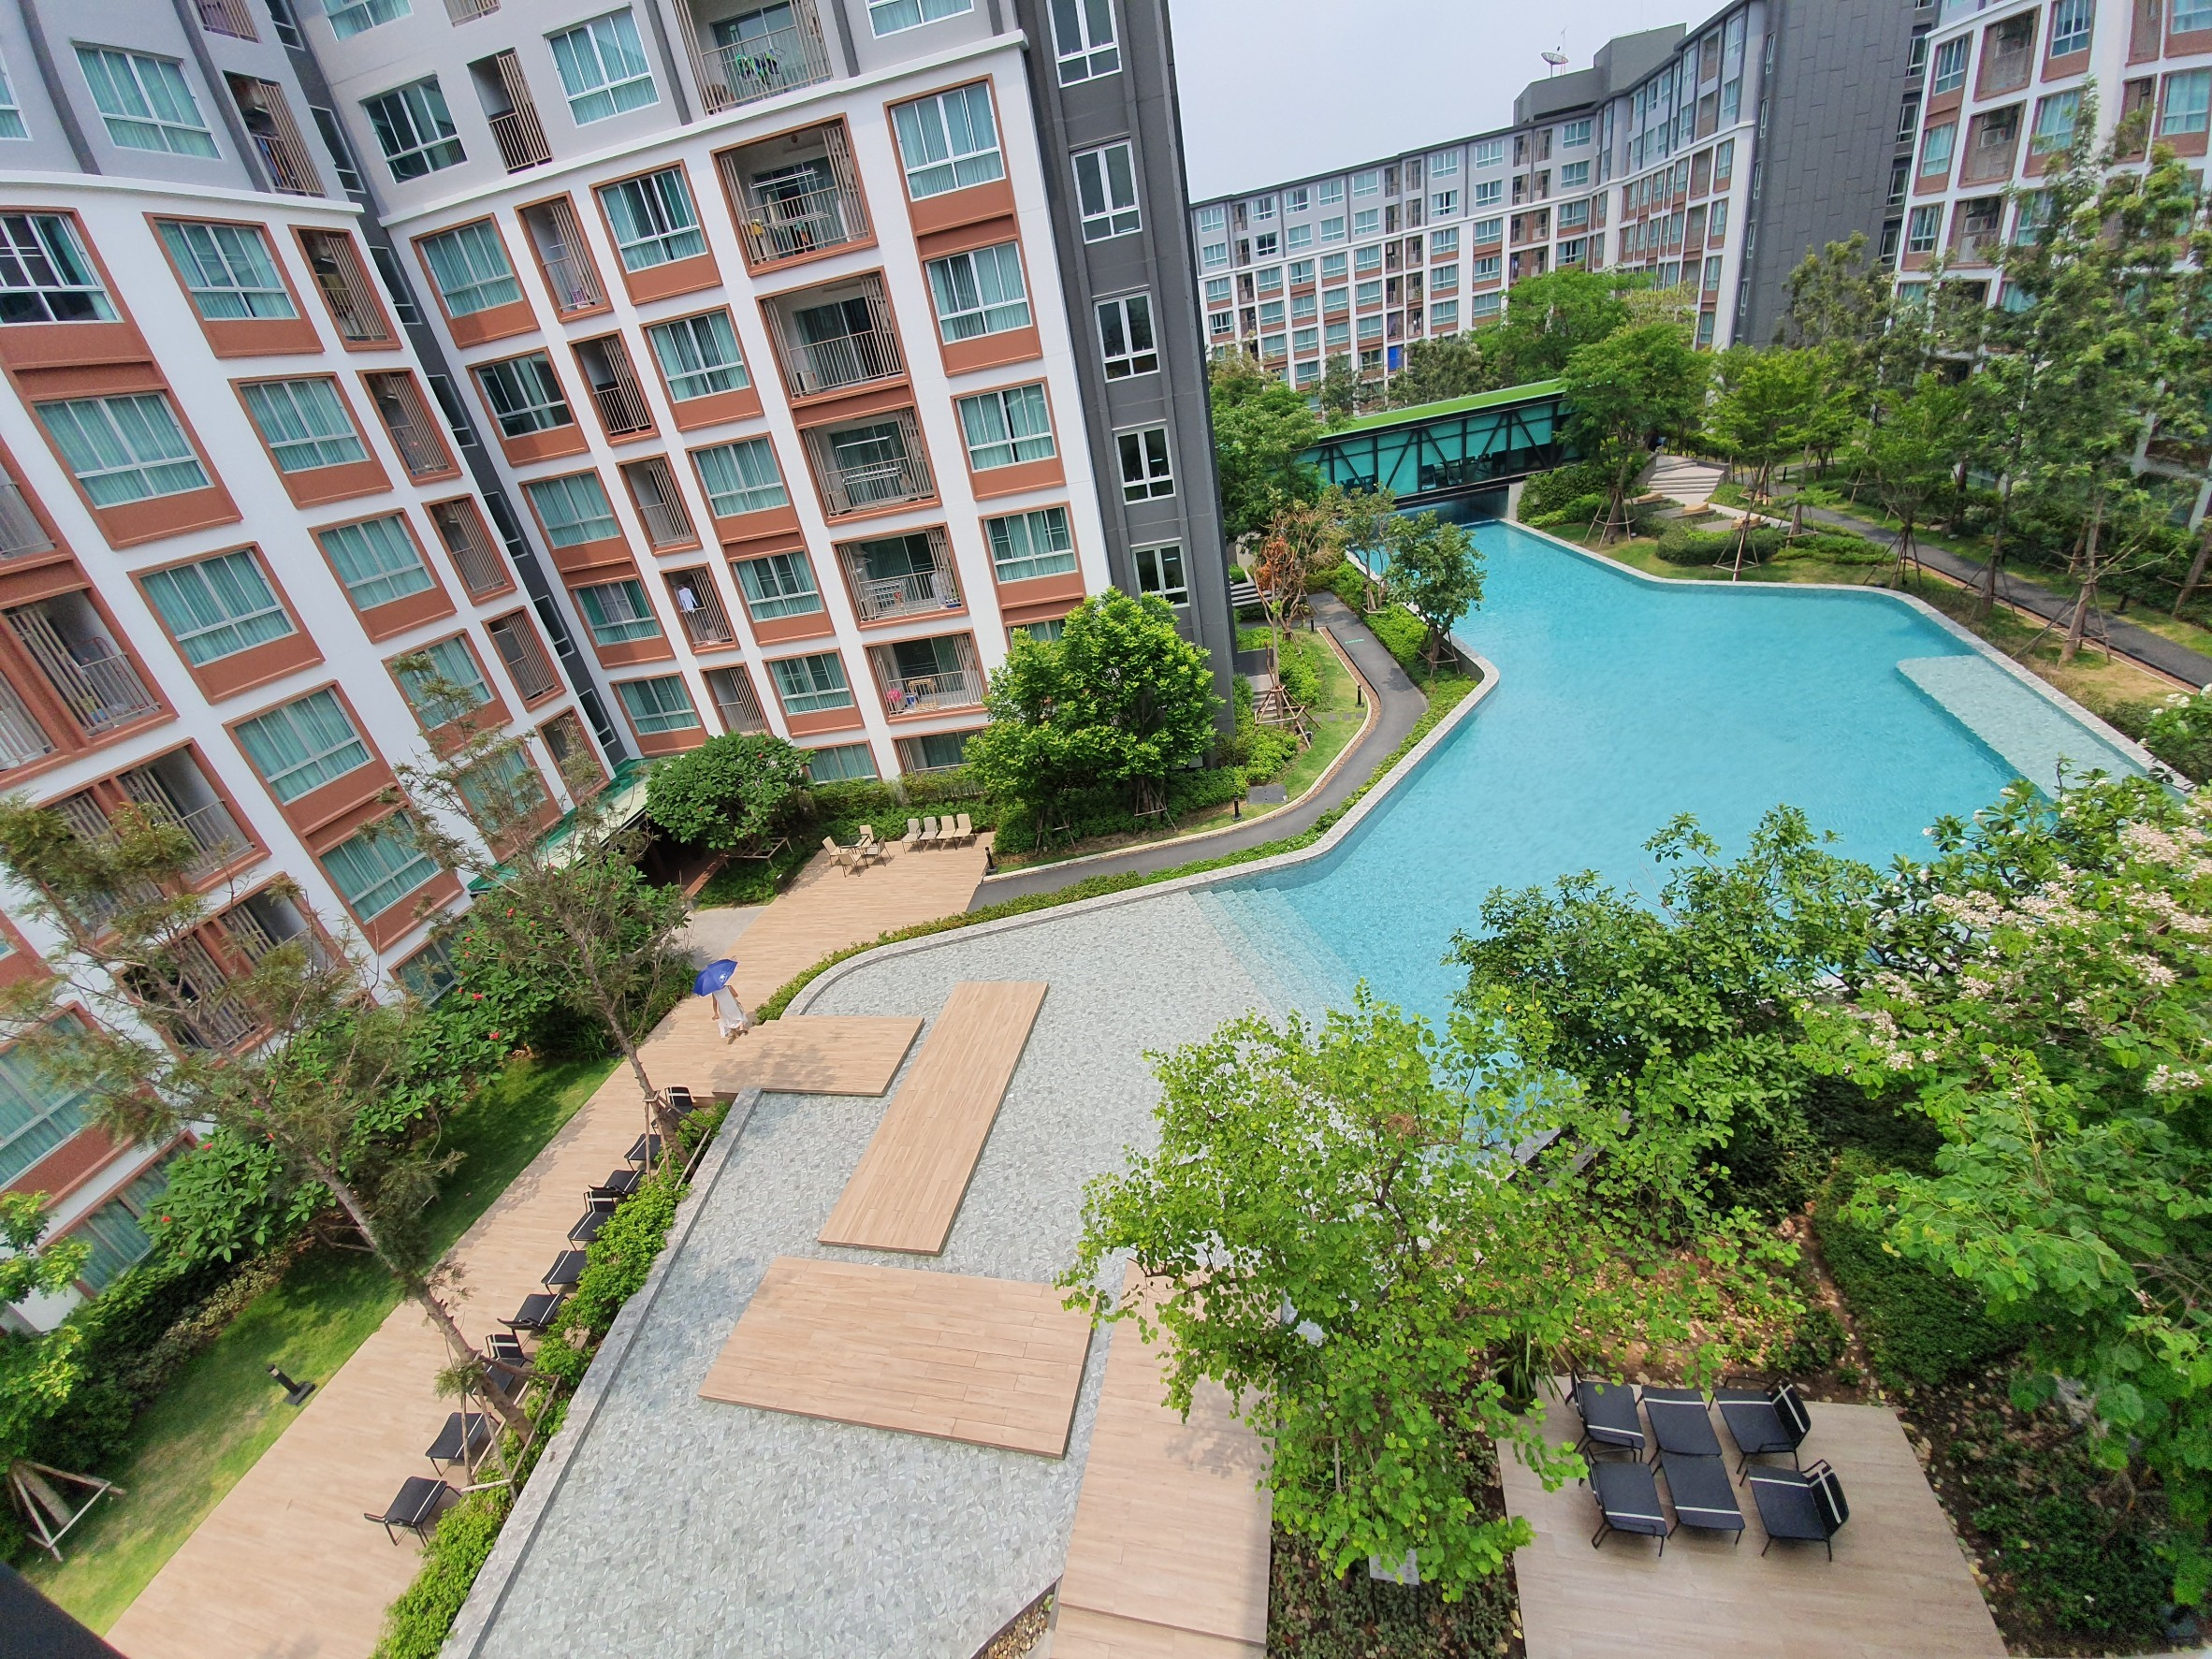 Dcondo-ping-swimming-pool-for-rent